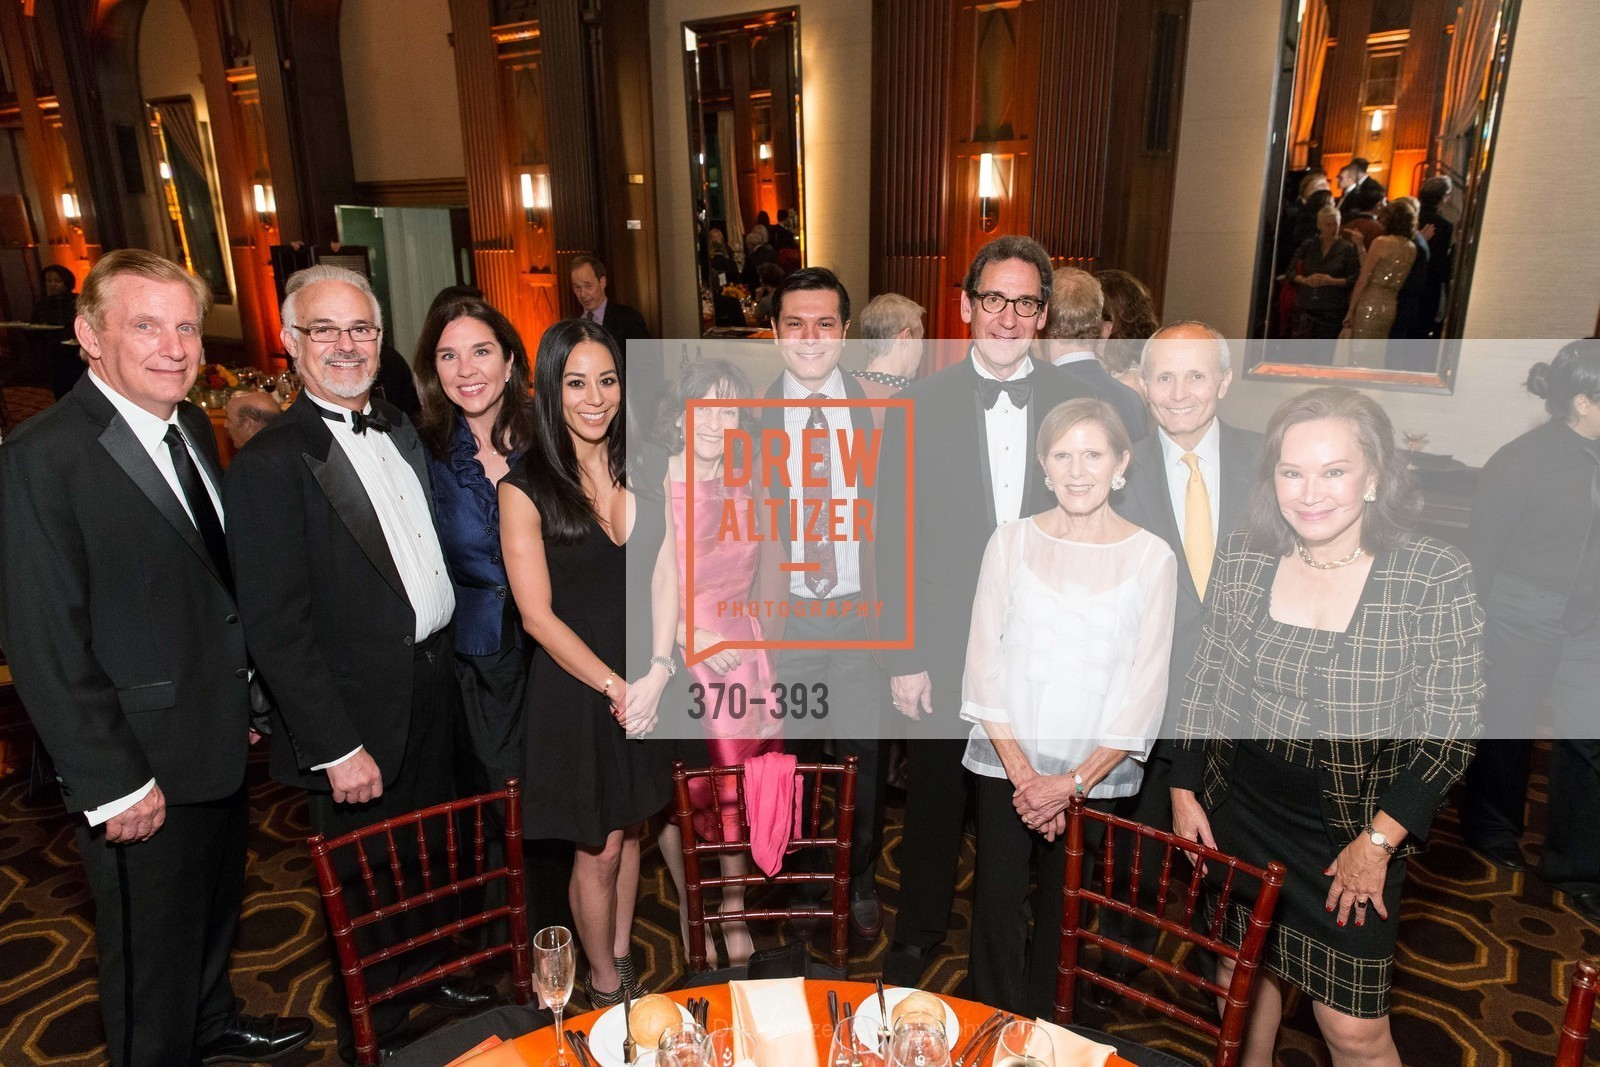 Sisi Tran, Joan Saffa, Michael Nguyen, Fred Levin, Susan Cortis, Jack Cortis, Martha Hertelendy, San Francisco Performances' 36th Season Gala, Merchants Exchange Building, Julia Morgan Ballroom. 465 California St, San Francisco, CA 94104, October 16th, 2015,Drew Altizer, Drew Altizer Photography, full-service agency, private events, San Francisco photographer, photographer california